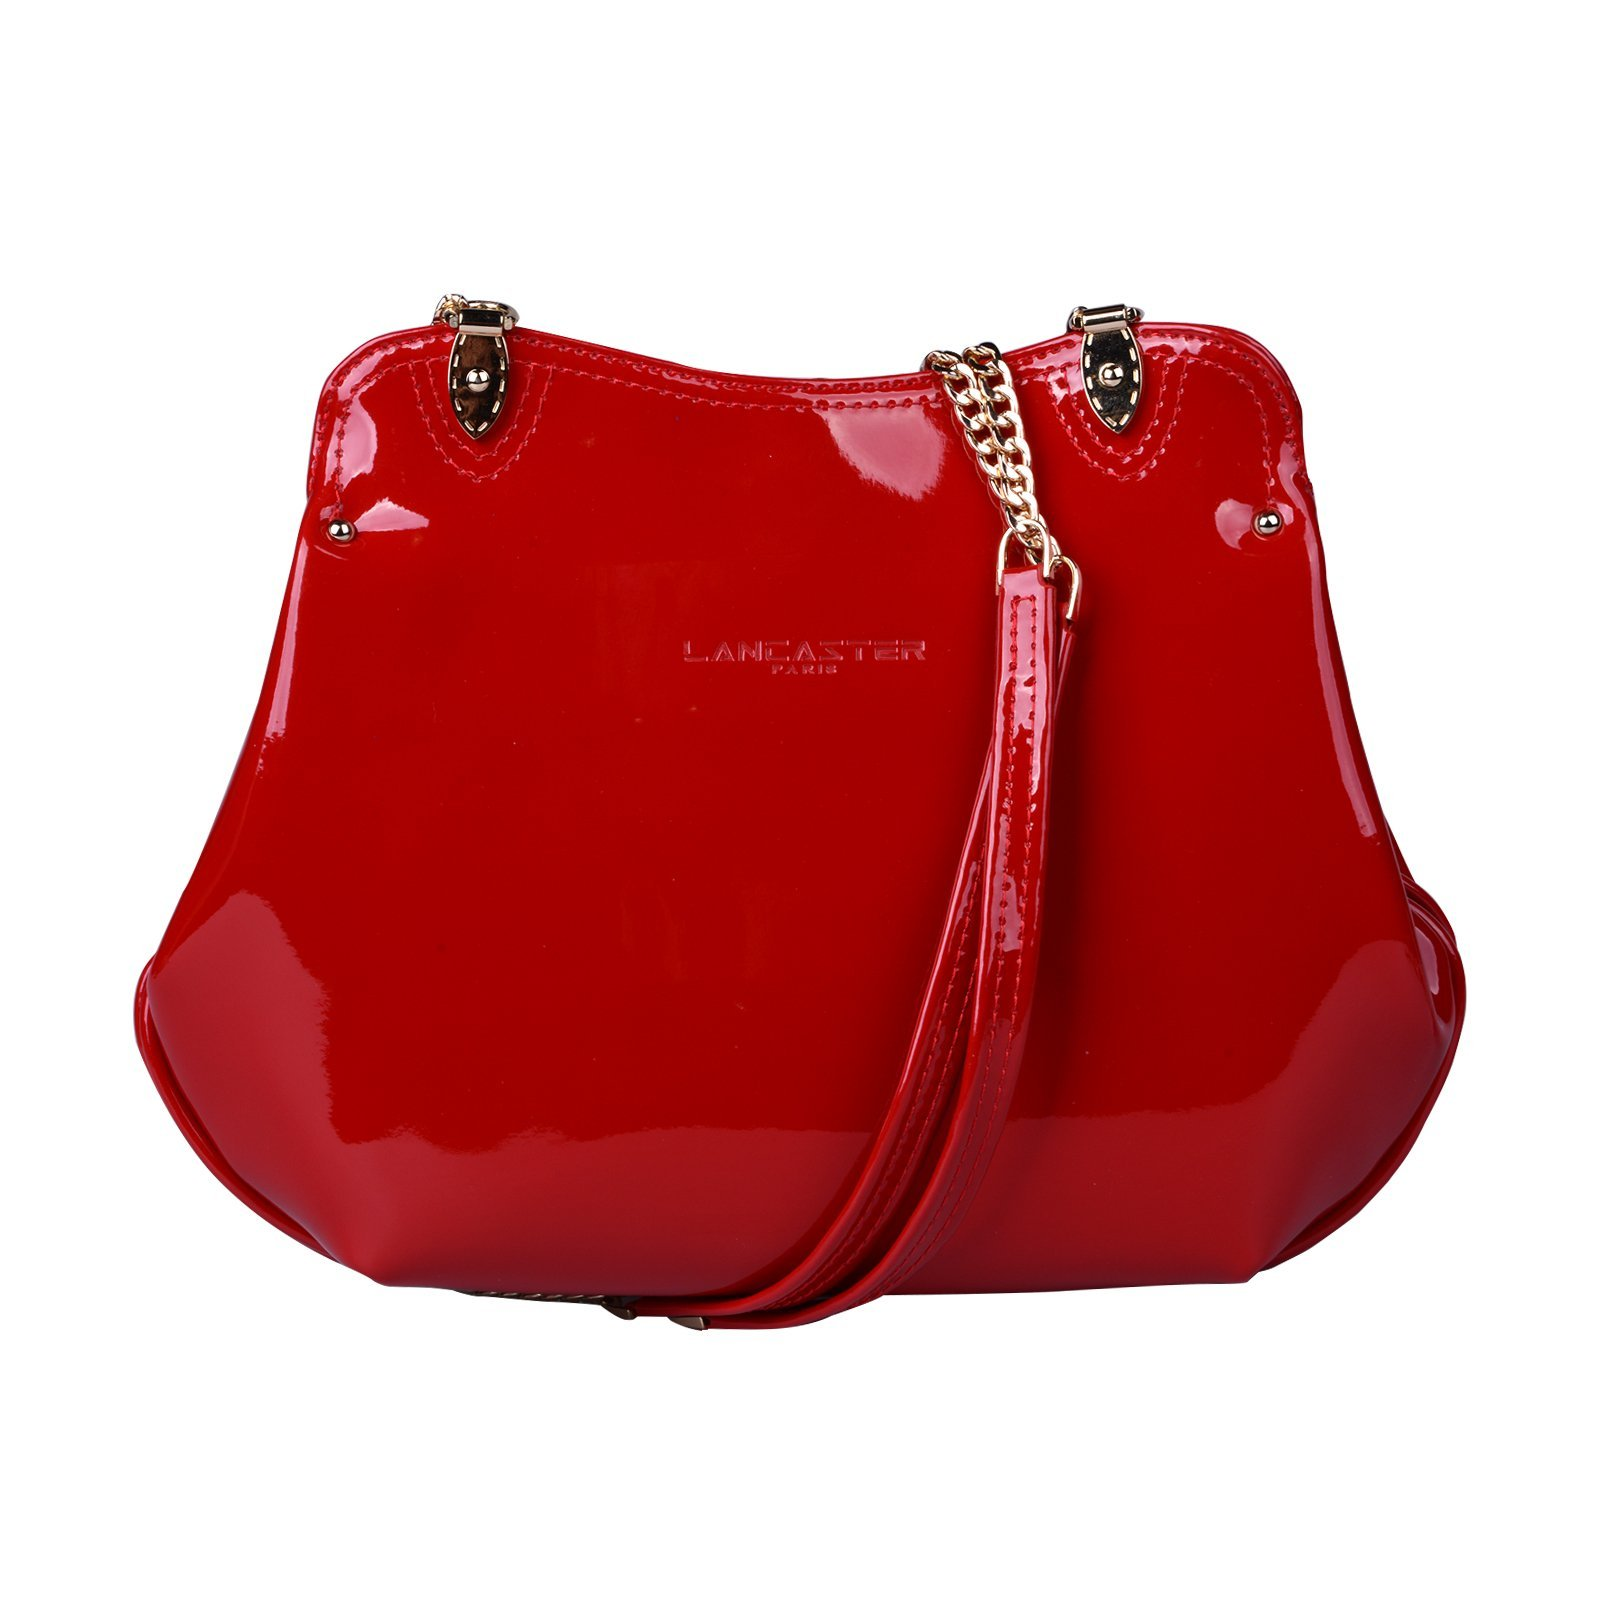 Lancaster 524-53 Ines Verni Patent Leather Crossbody RED